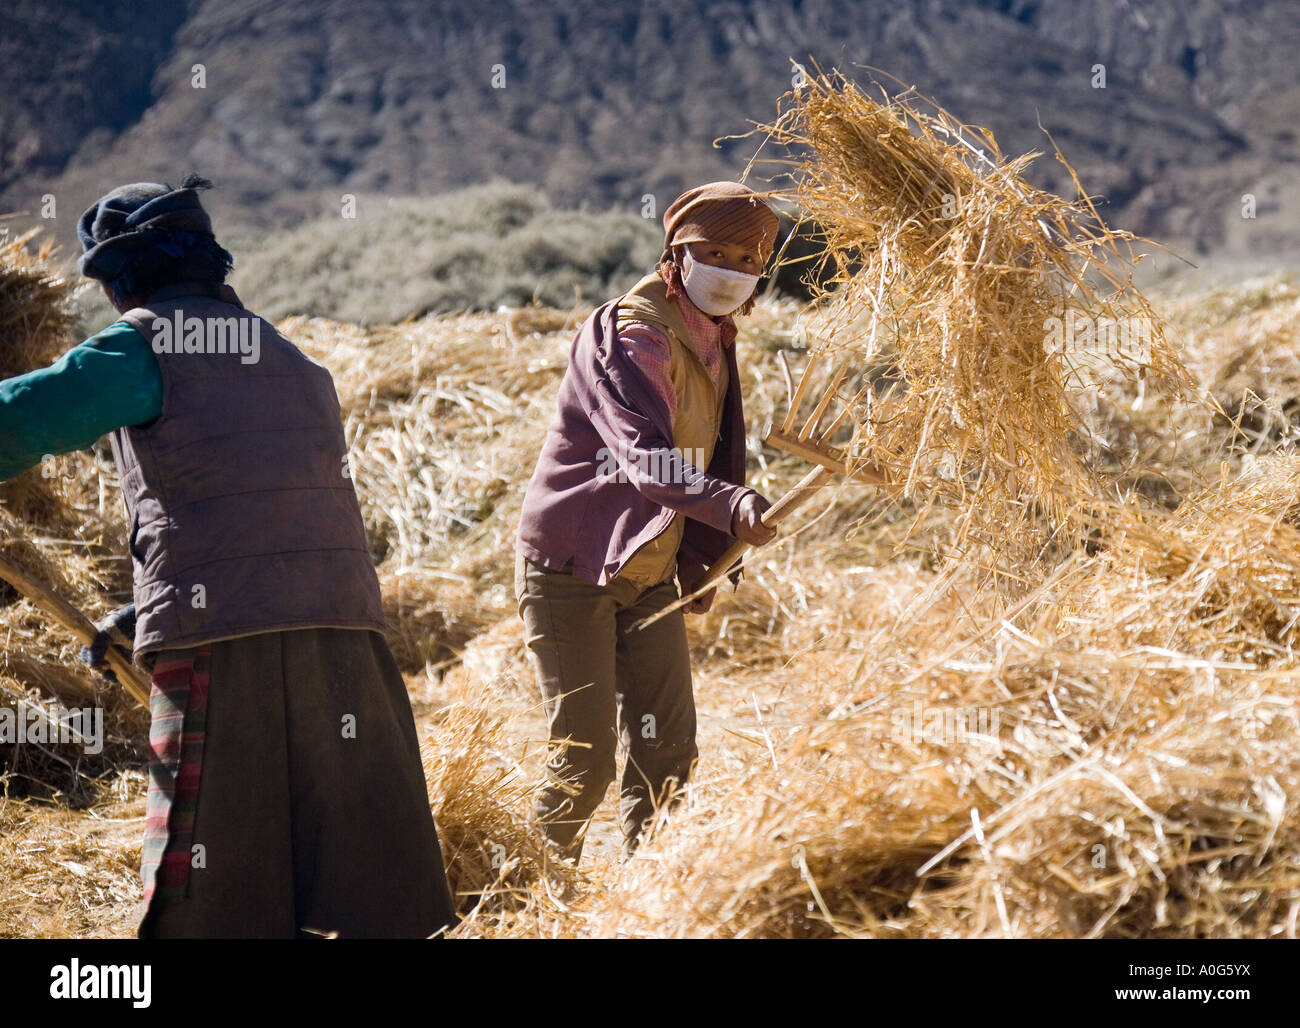 Rural life at harvest time in Tibet near the town of Gyantse in the Tibet Autonomous Region of China - Stock Image